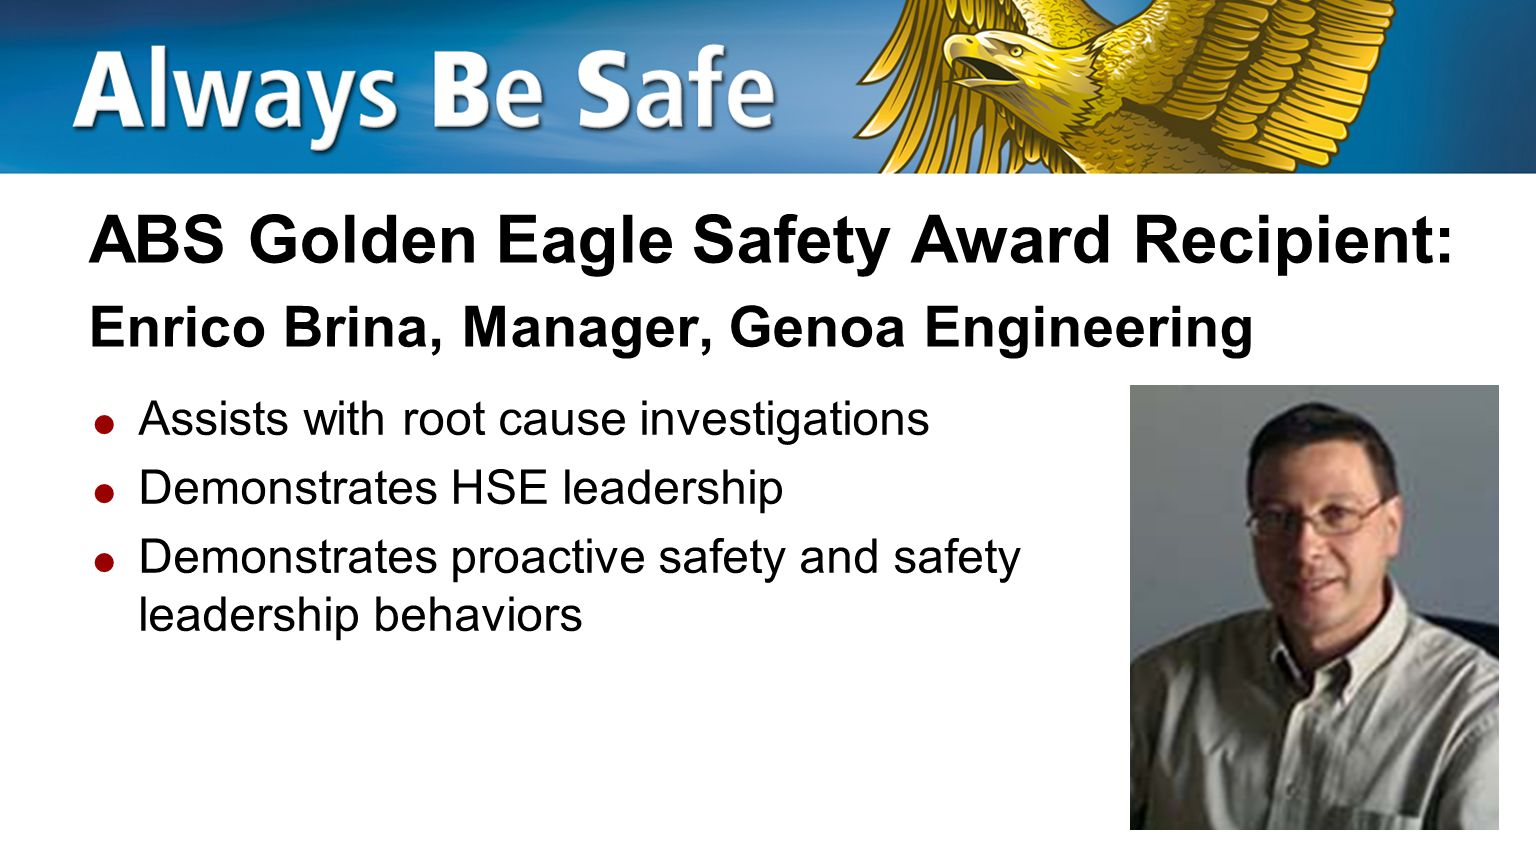 ABS Golden Eagle Safety Award Recipient: David Lynch, Surveyor, Geoje  Proactively makes suggestions on improving safety  Actively participates in safety initiatives  Demonstrates safety leadership with peers and in the workplace with clients